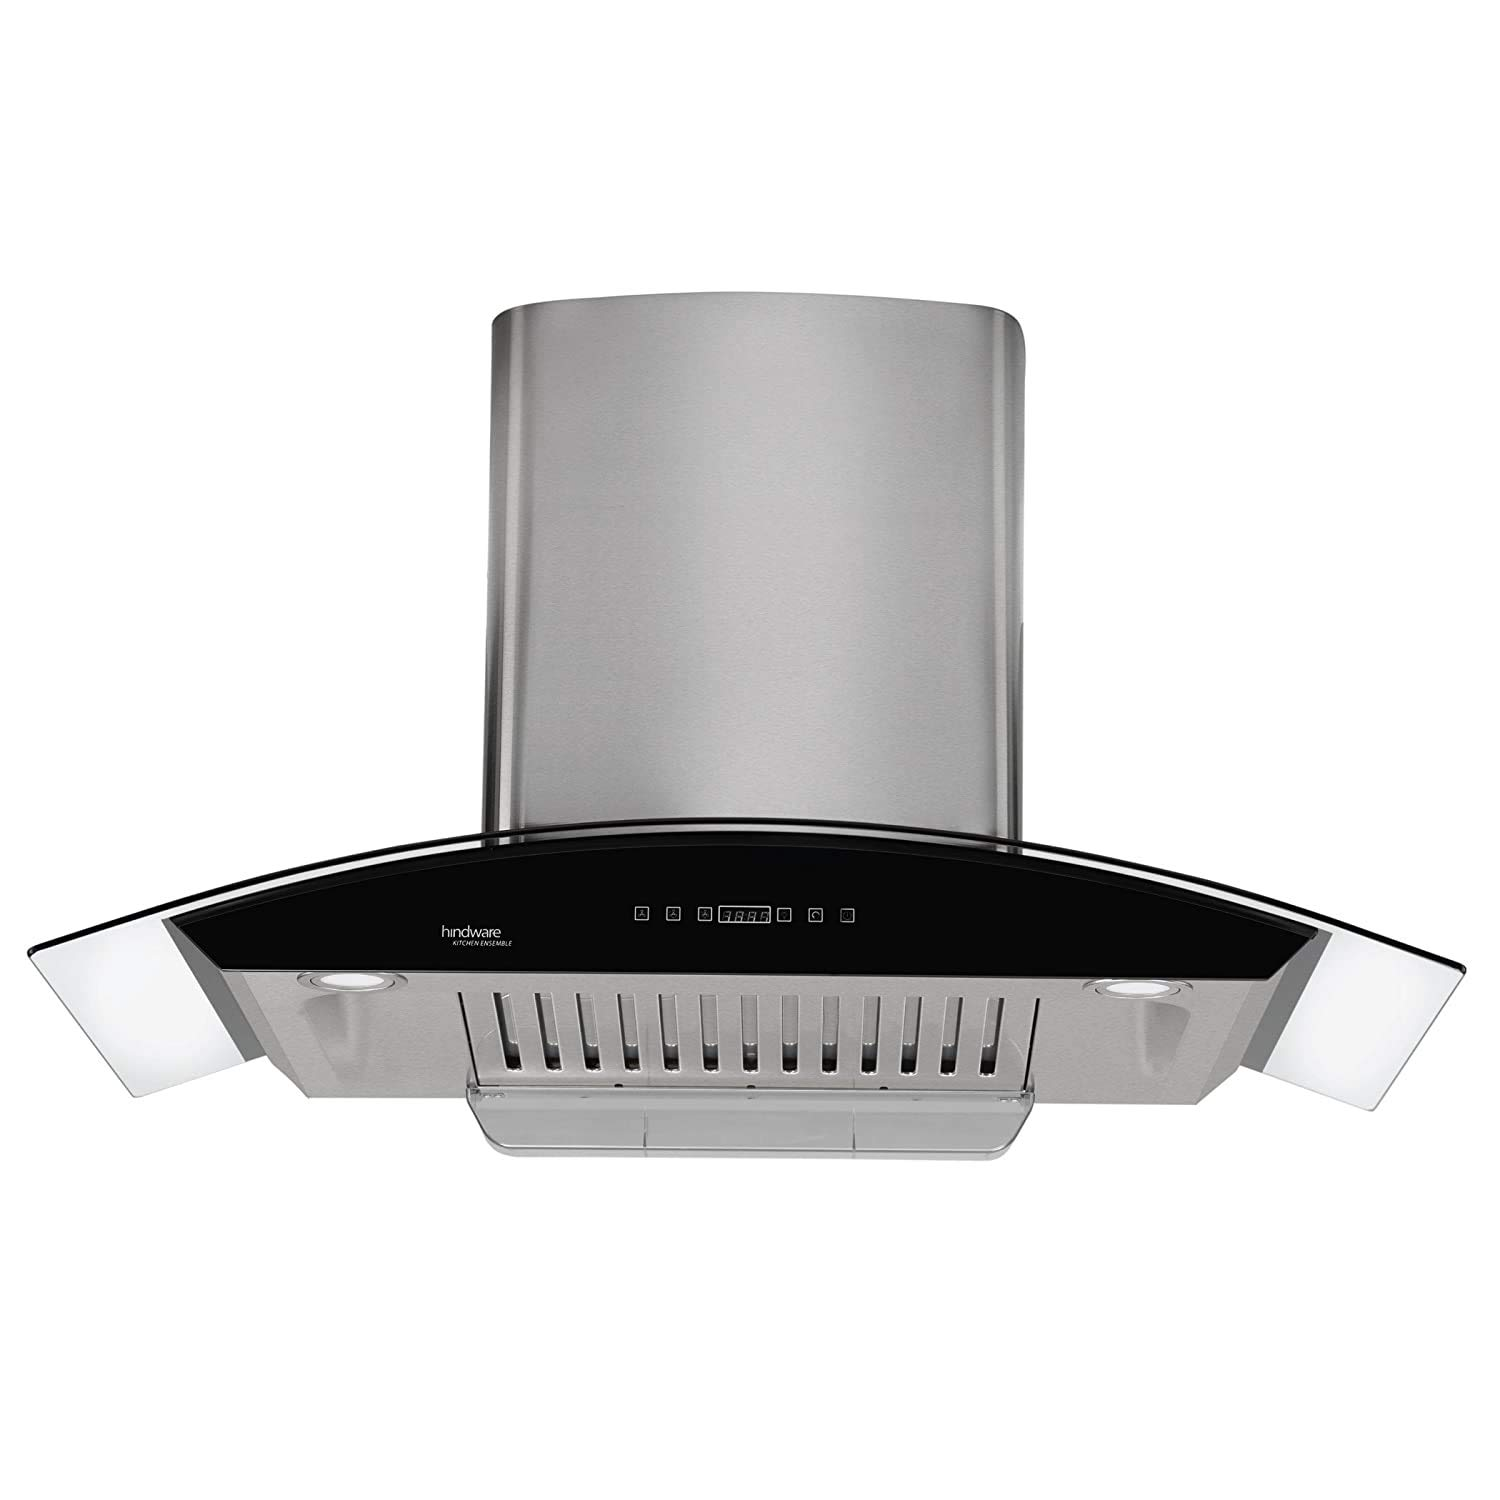 Hindware 90cm 1200 m3/hr Auto Clean Chimney (Nevio 90, 1 Baffle Filter, Steel/Grey)